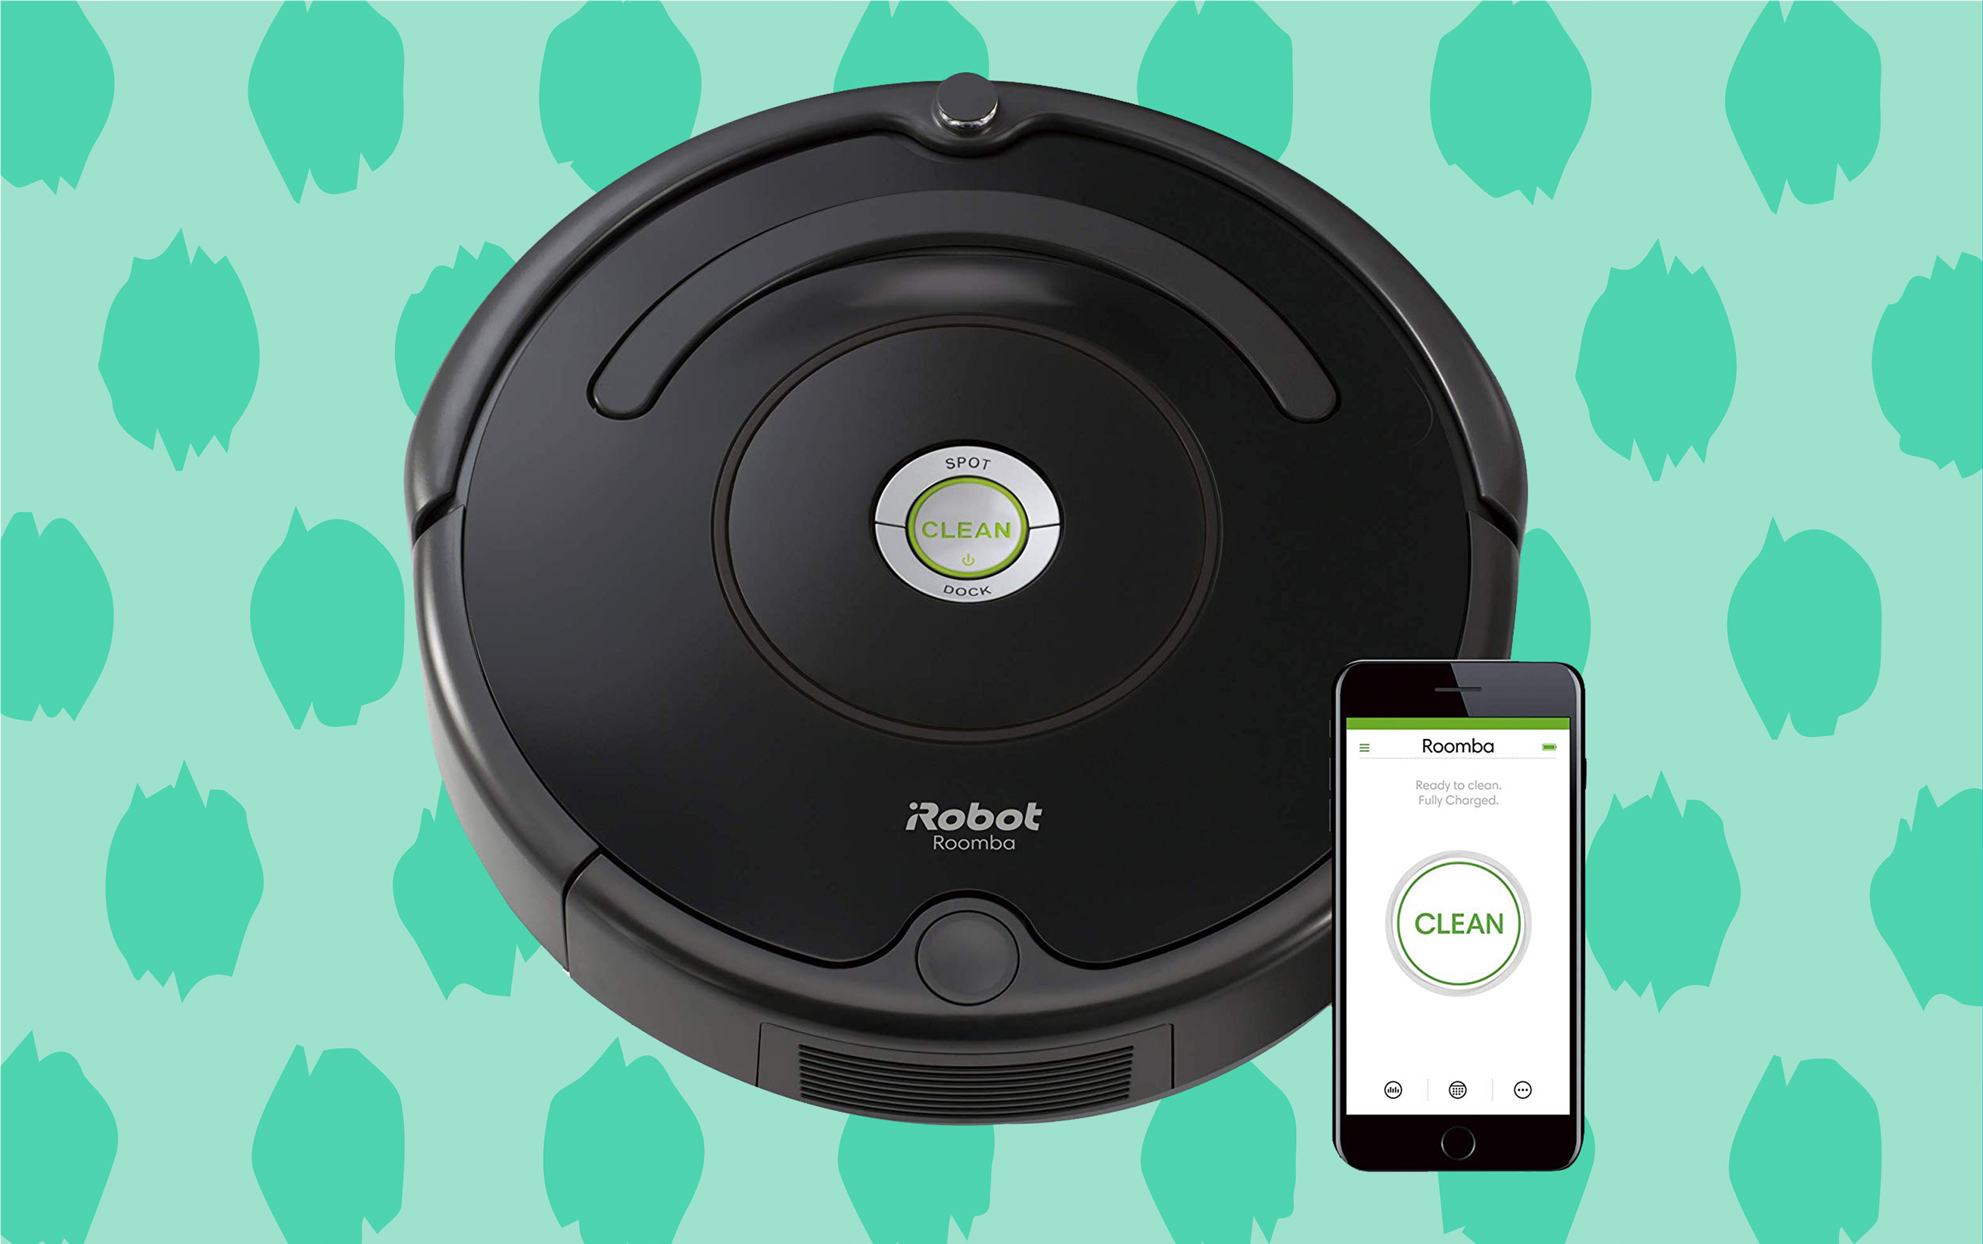 Roomba with an iphone on a green patterned background